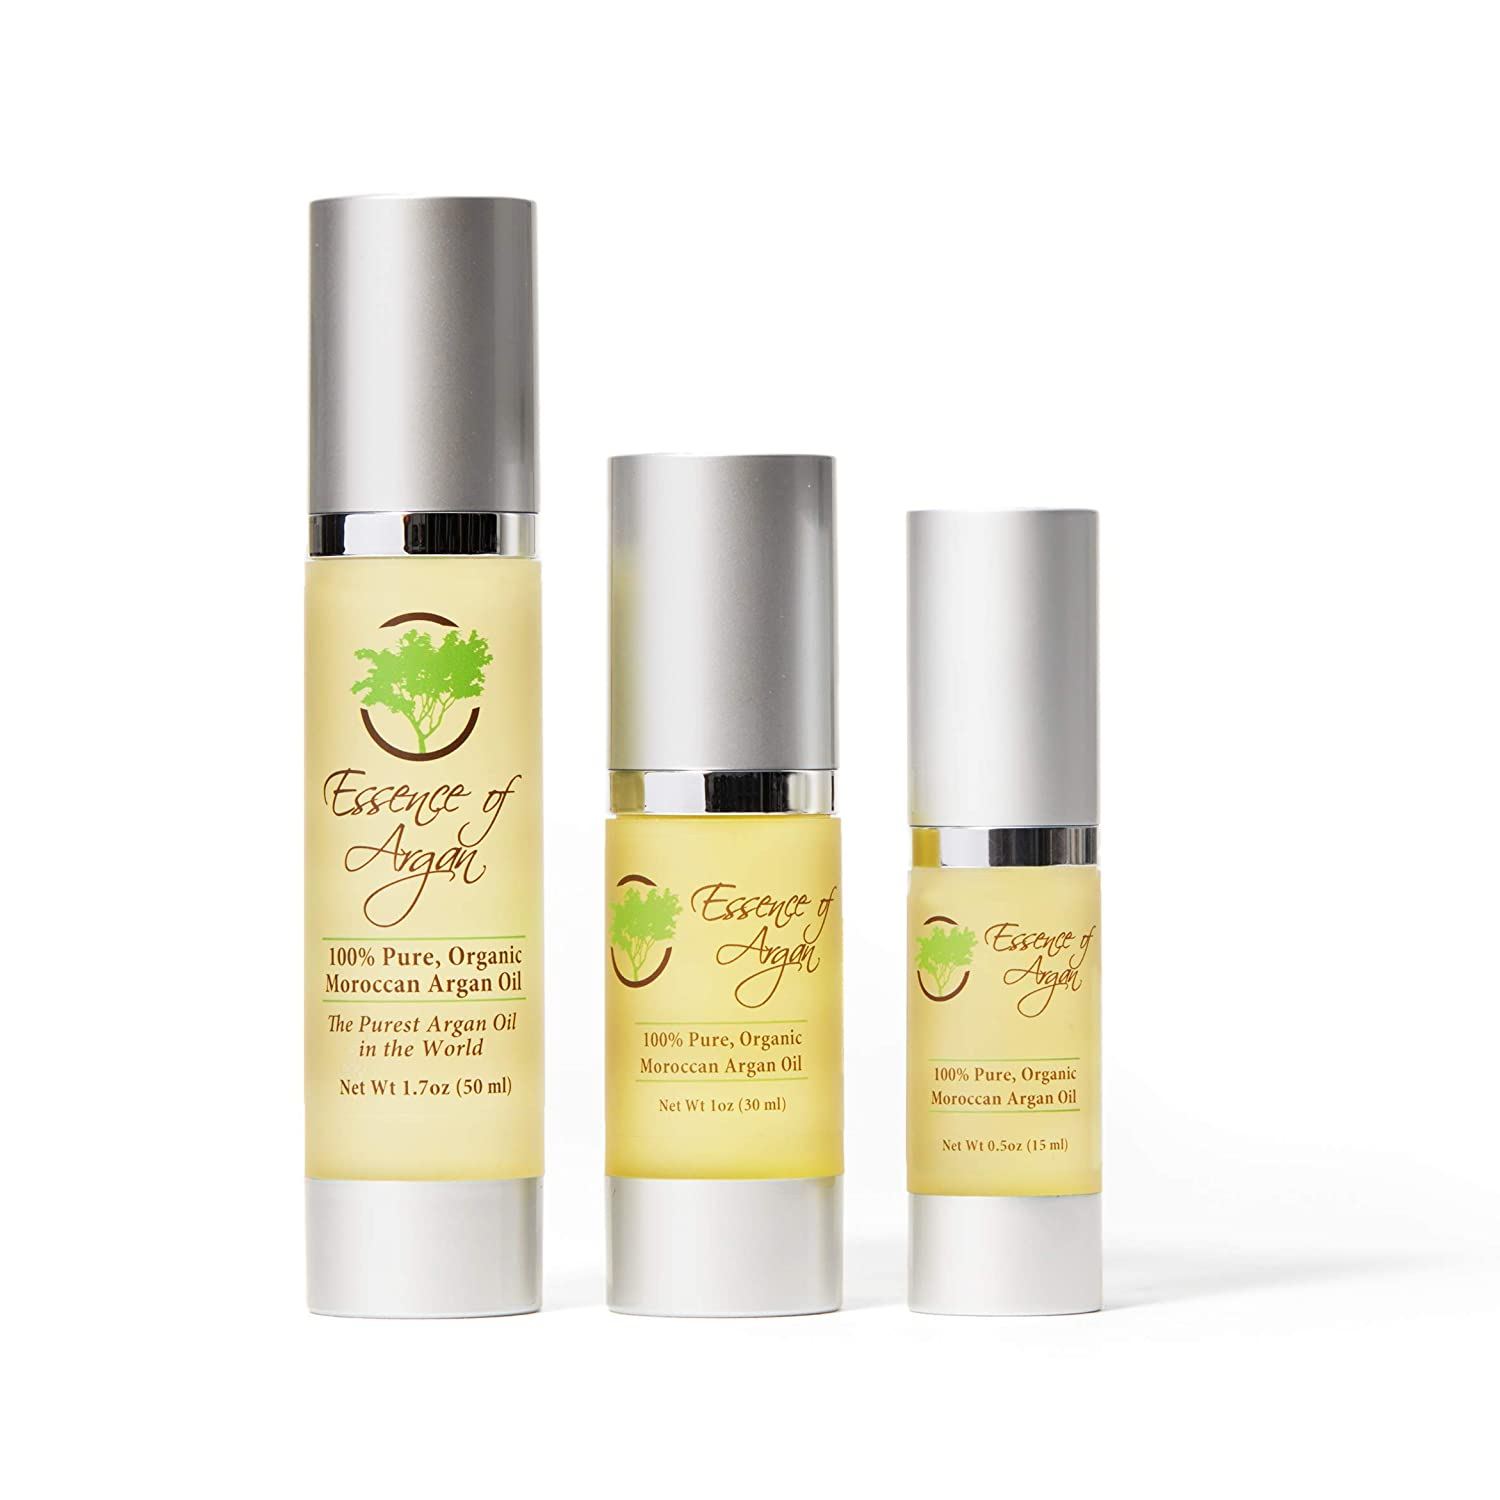 50ml 1.70z Eco Certified Organic Argan Oil for Skin and Hair by Essence of Argan